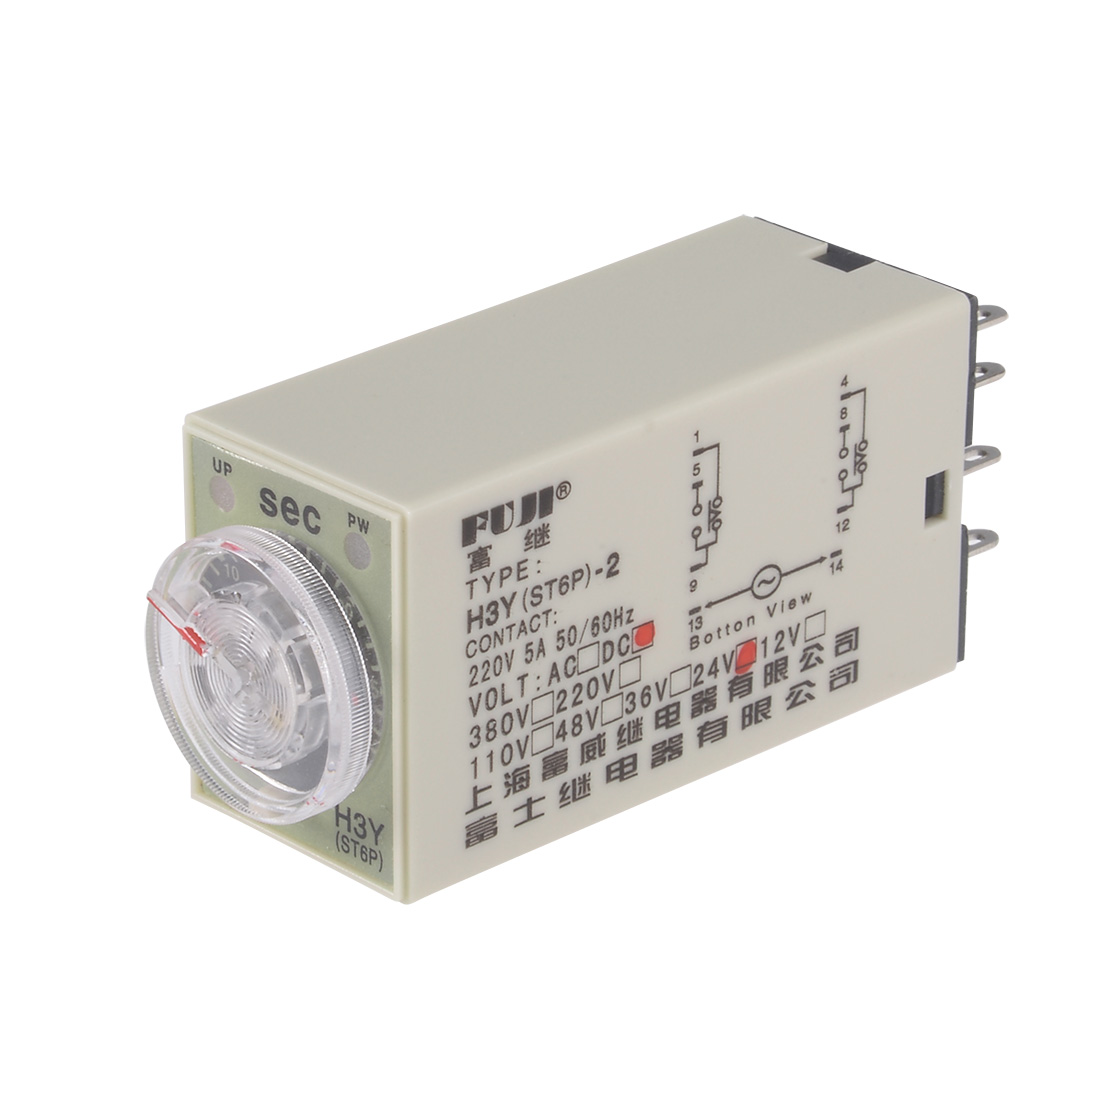 24VDC 30S 8 Terminals Range Adjustable Delay Timer Time Relay H3Y(ST6P)-2